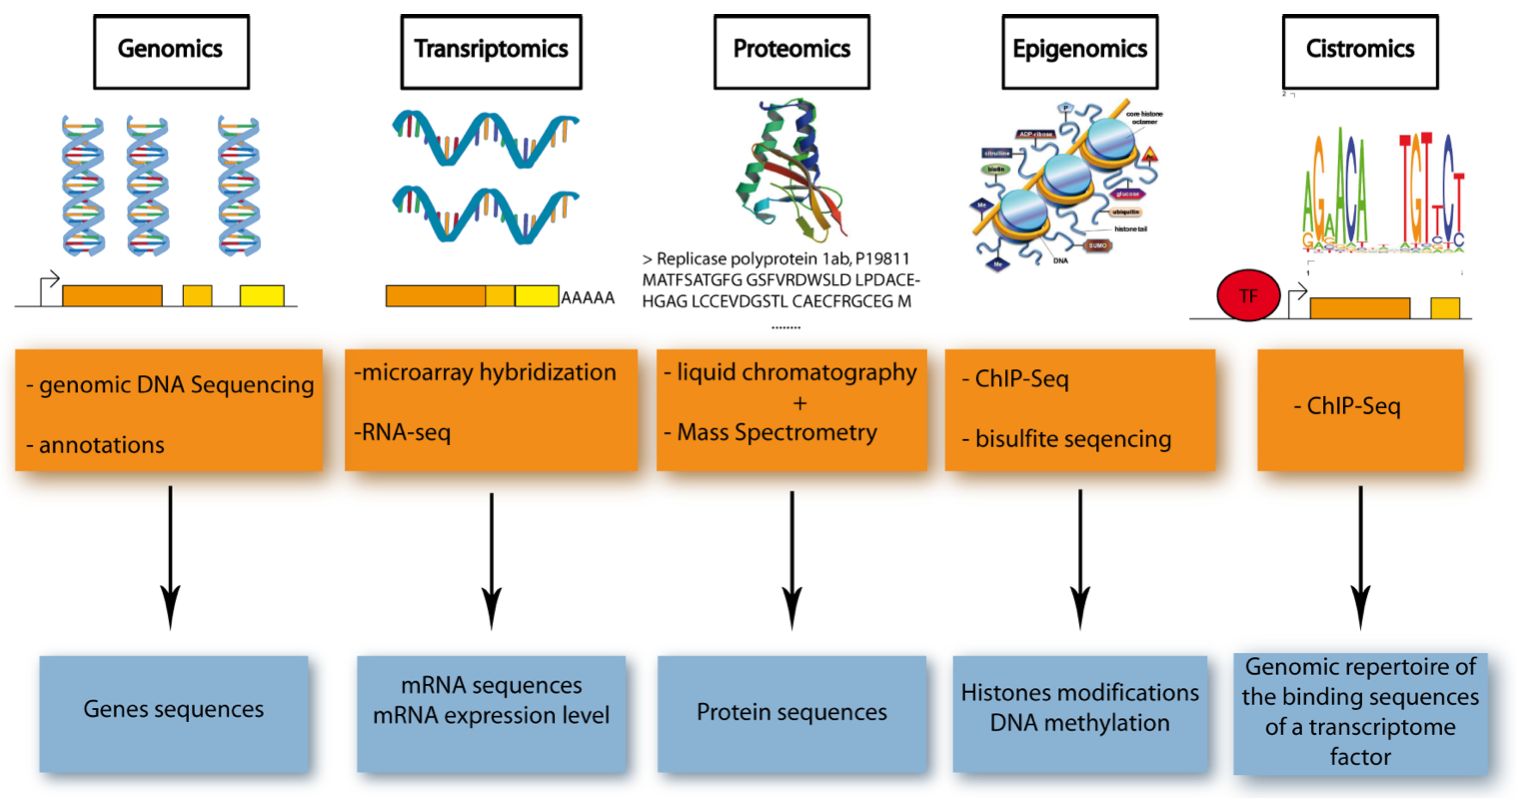 Five Major Omics Technologies.